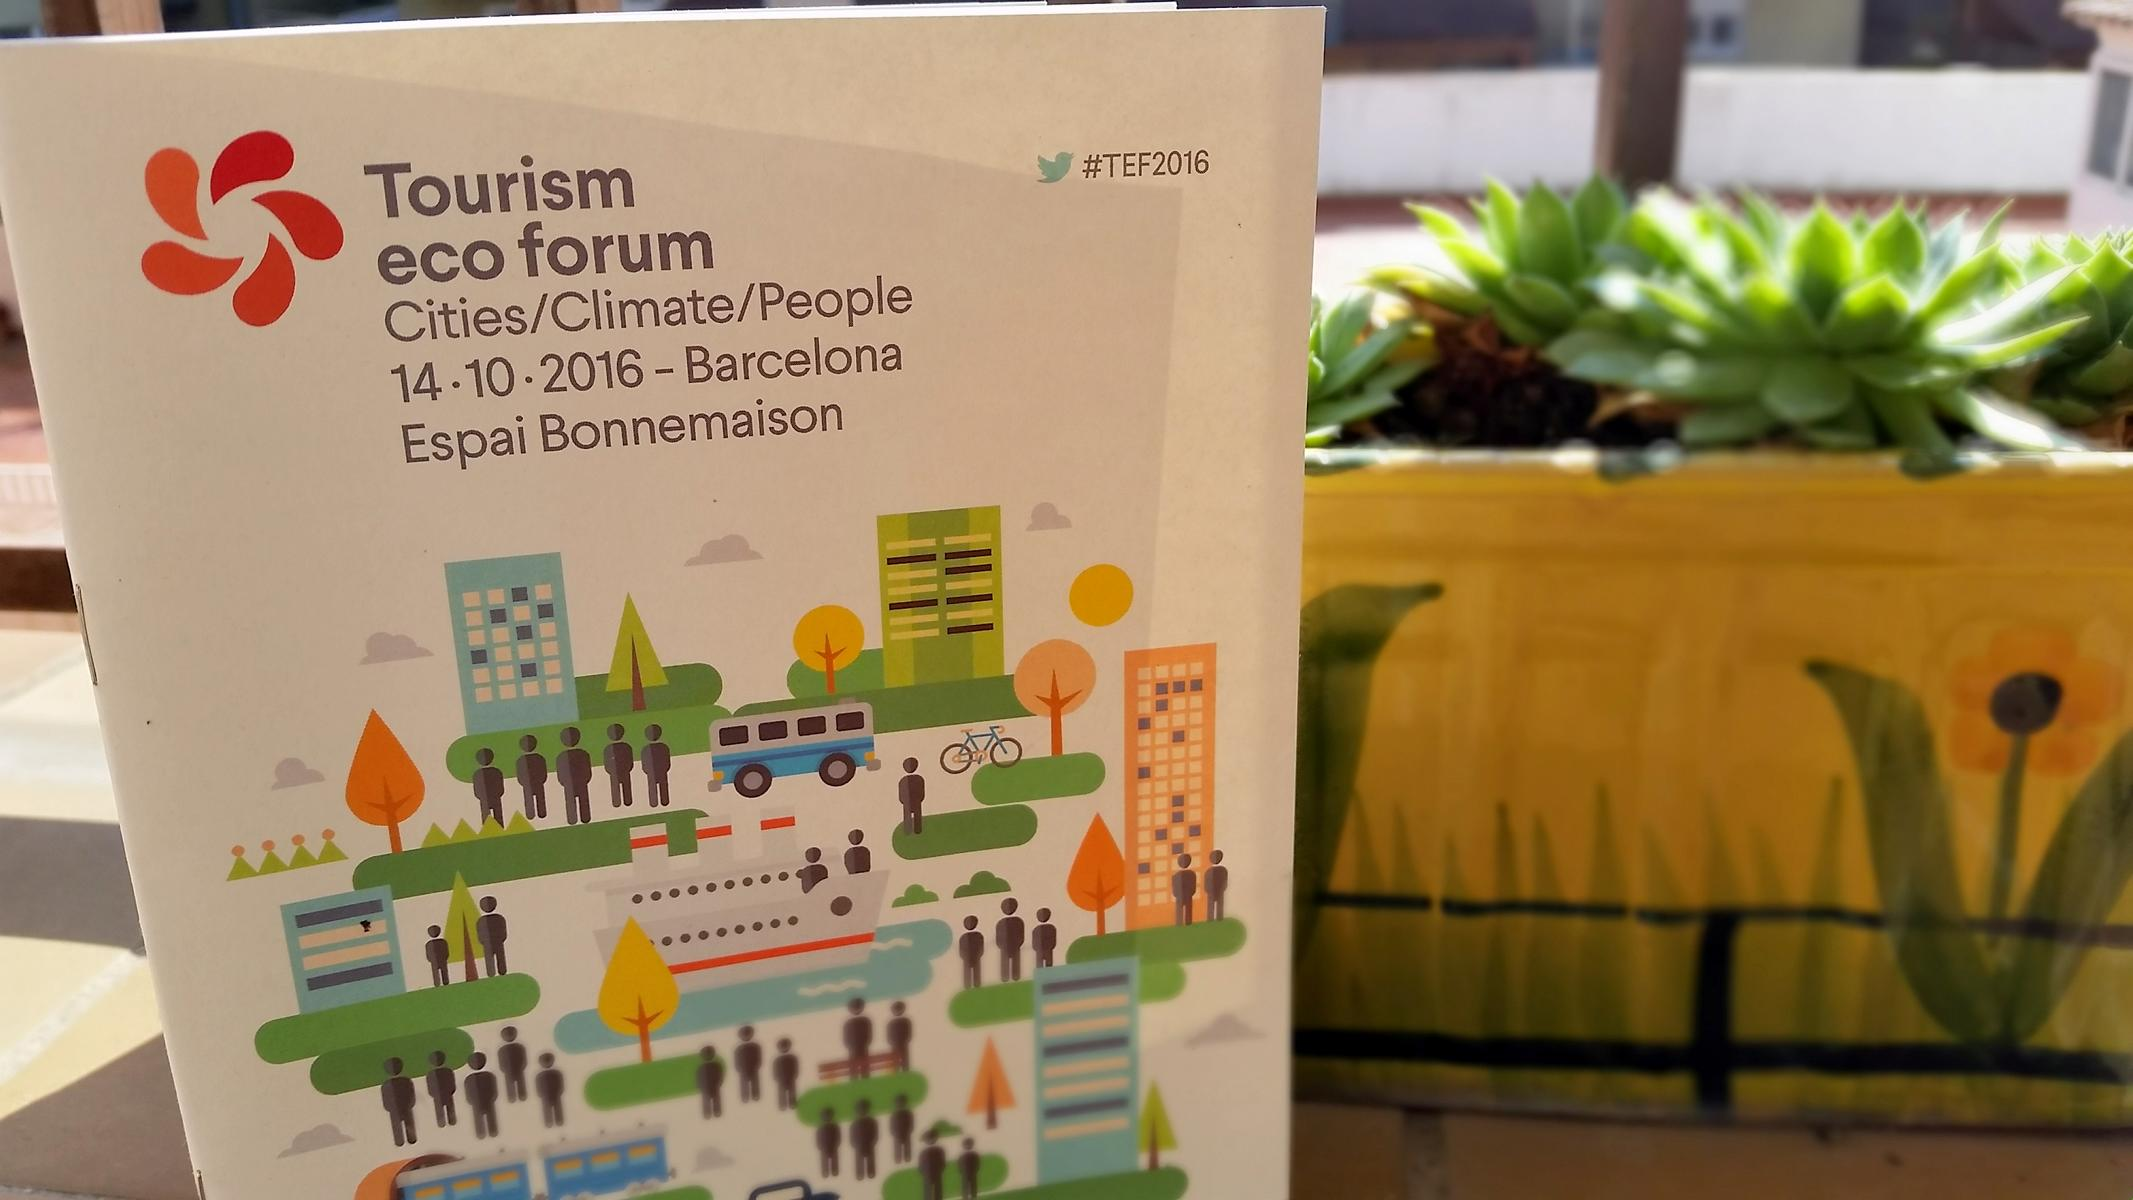 Barcelona tourism eco forum summary